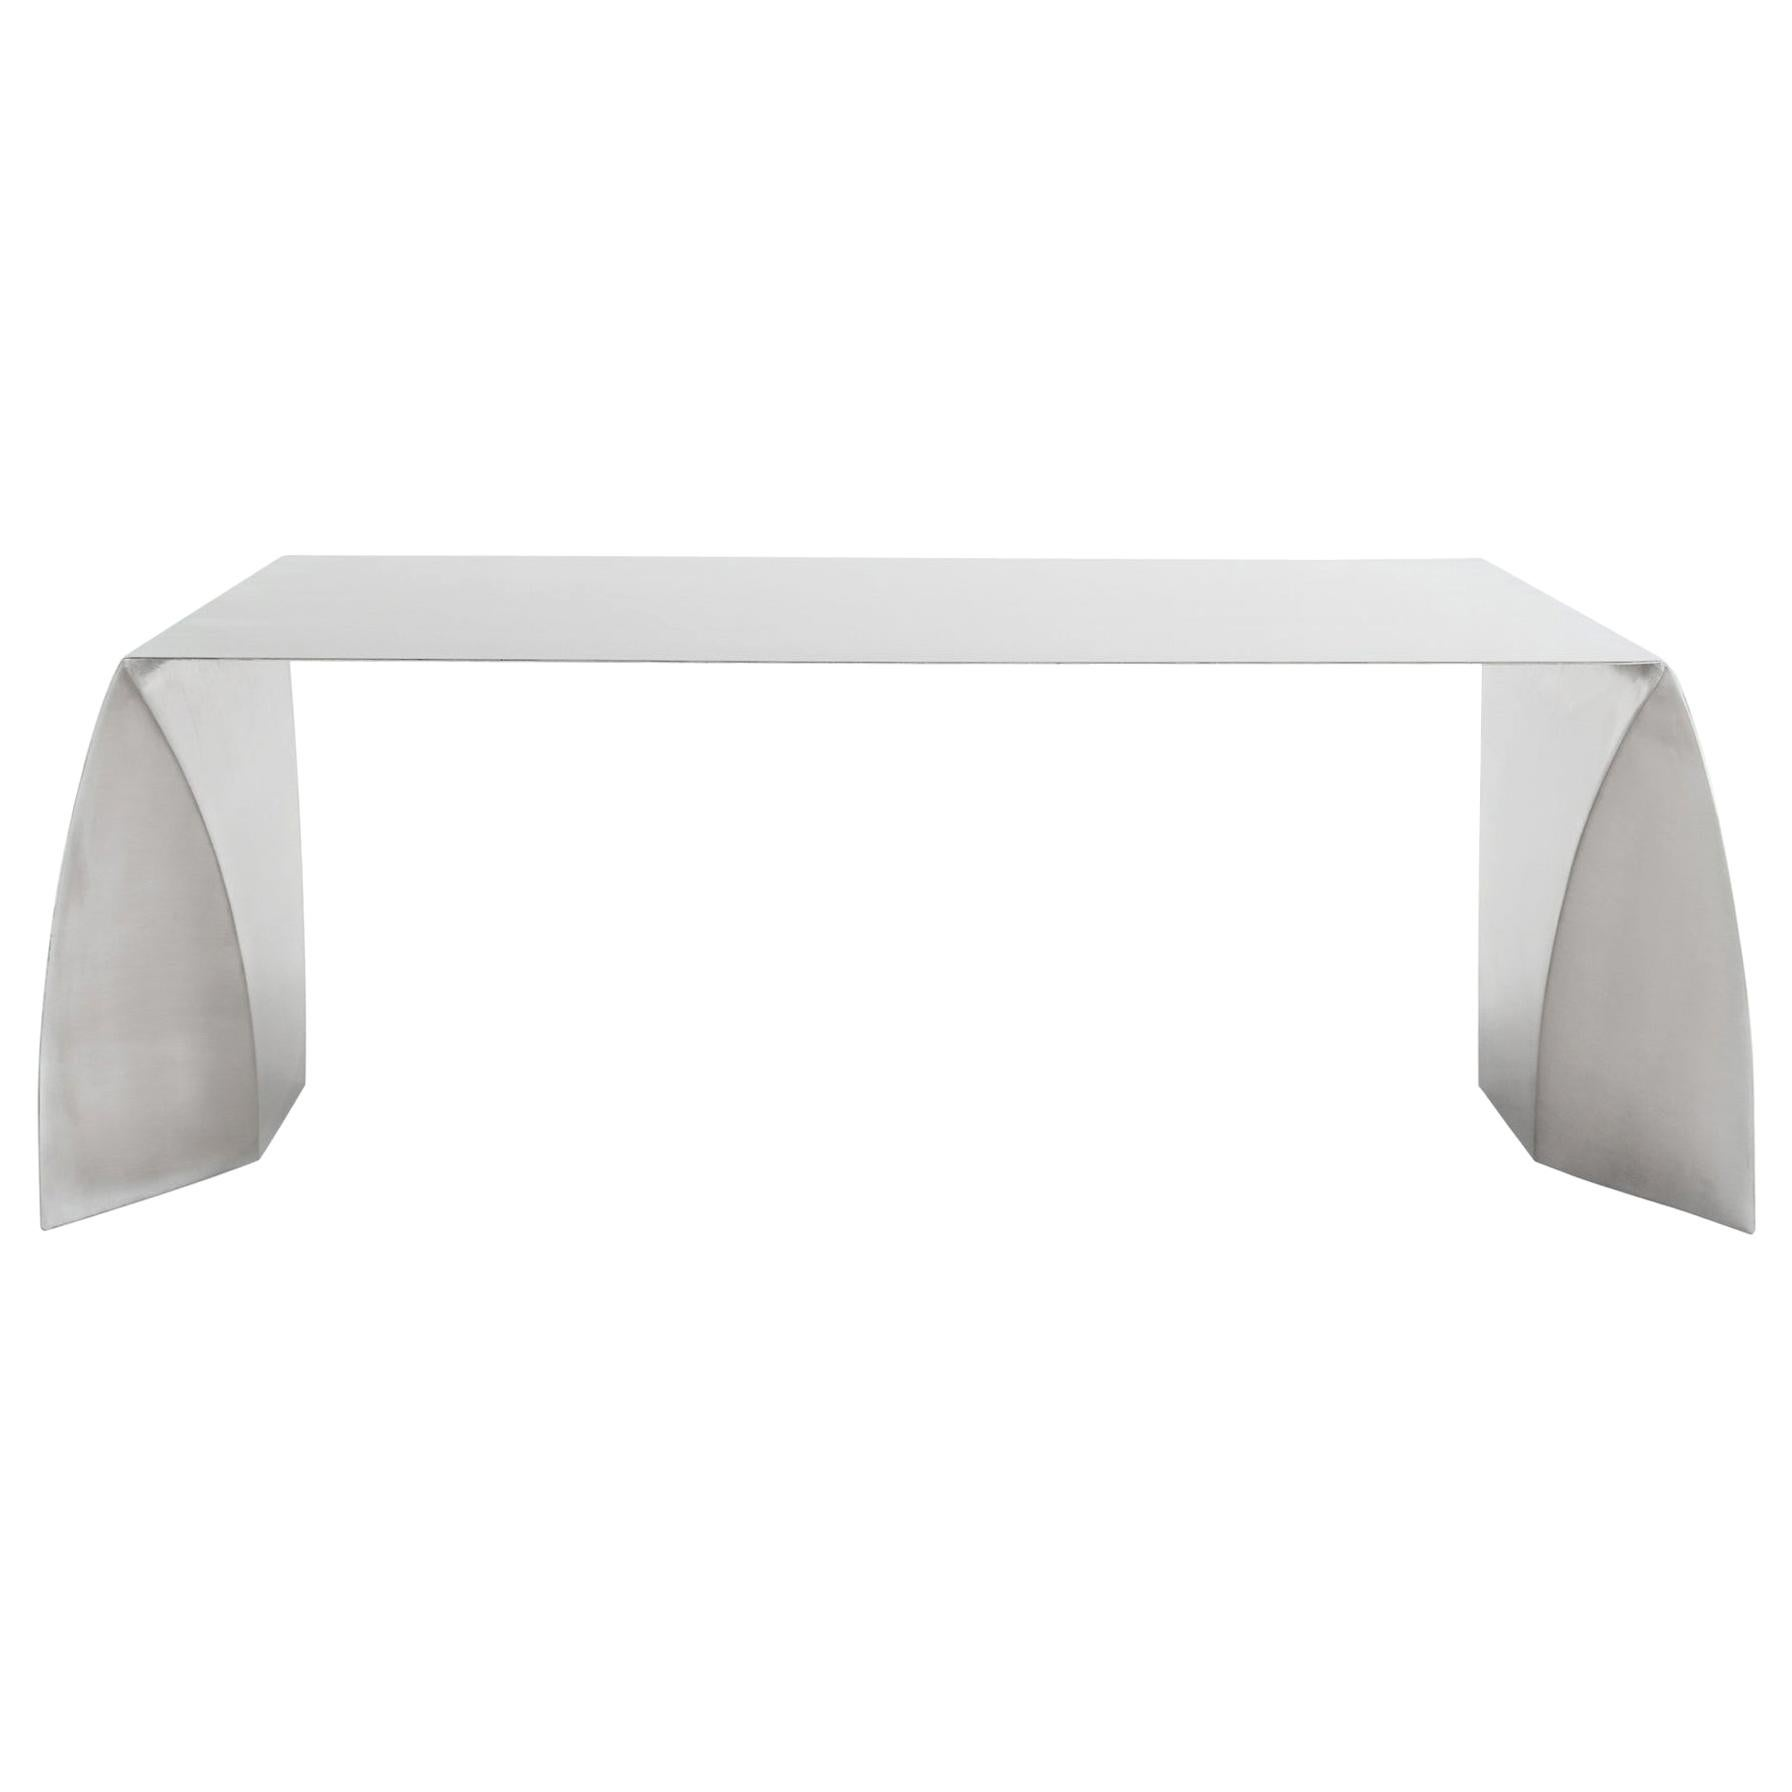 Adolfo Abejon Contemporary Rationalist Design Stainless Steel Kate Coffee Table